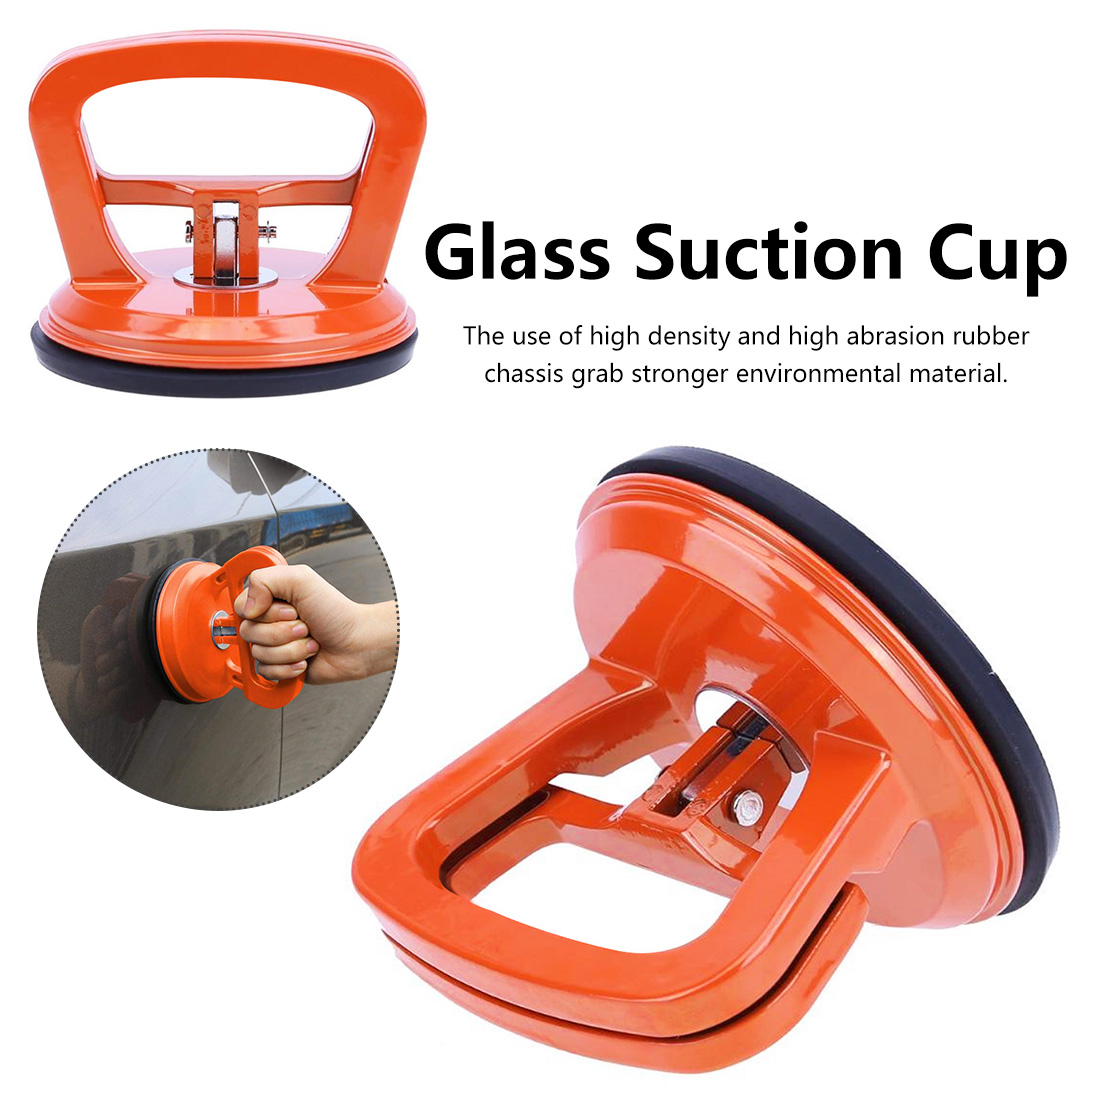 Plastic Orange Single Claw Glass Suction Cup Tile Suction Cup Anti-static Floor Car Body Repair Suction Cup